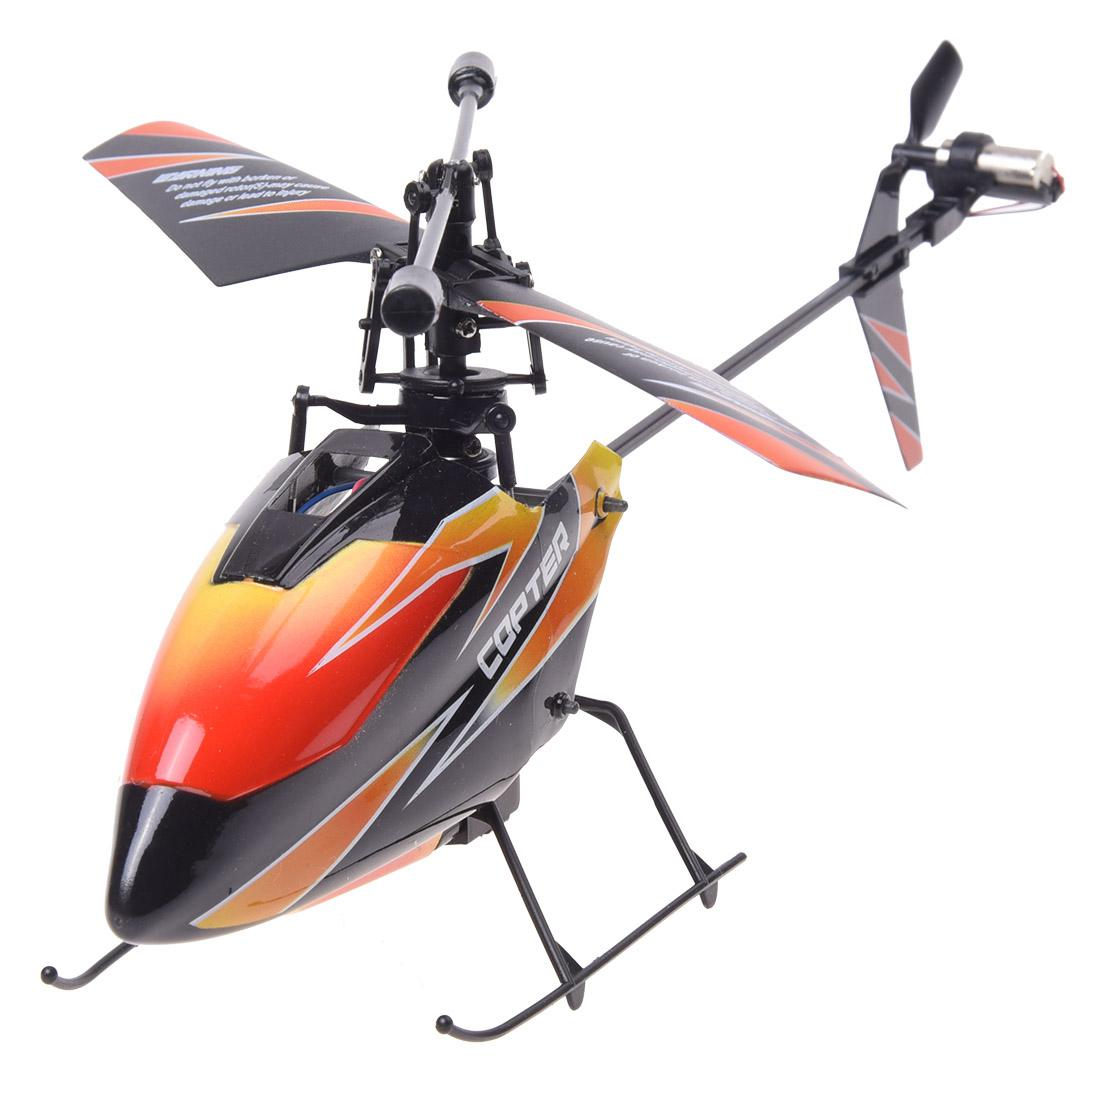 ABWE V911 2 4GHz 4CH RC Helicopter BNF New Plug Version